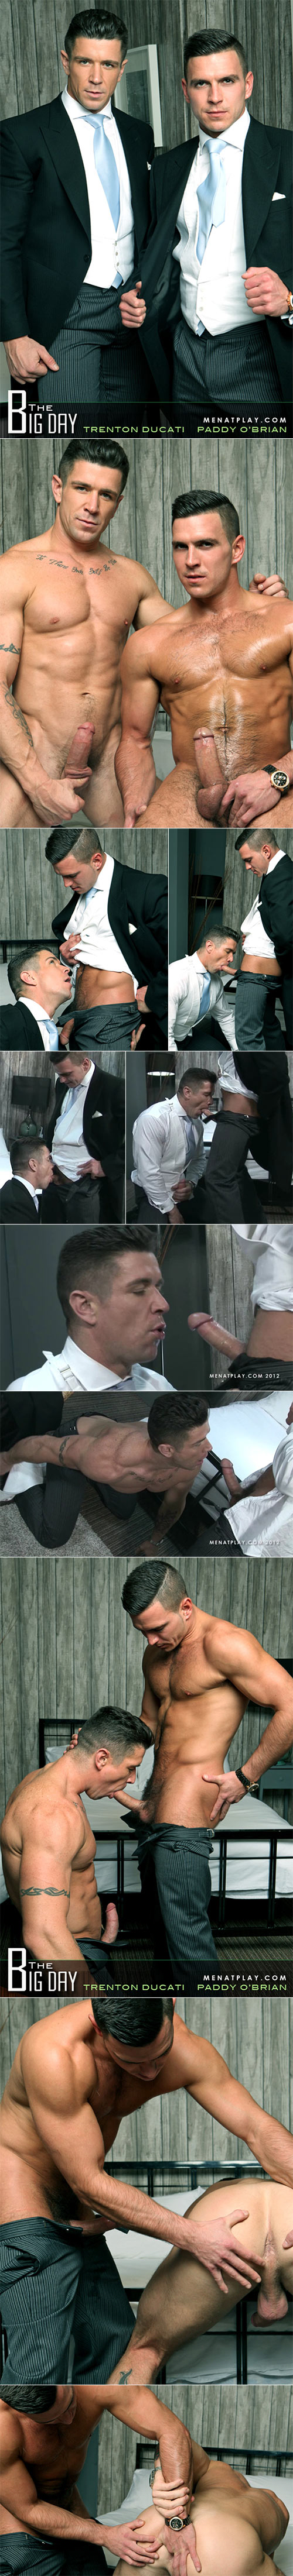 "MenAtPlay: Paddy O'Brian fucks Trenton Ducati in ""The Big Day"""